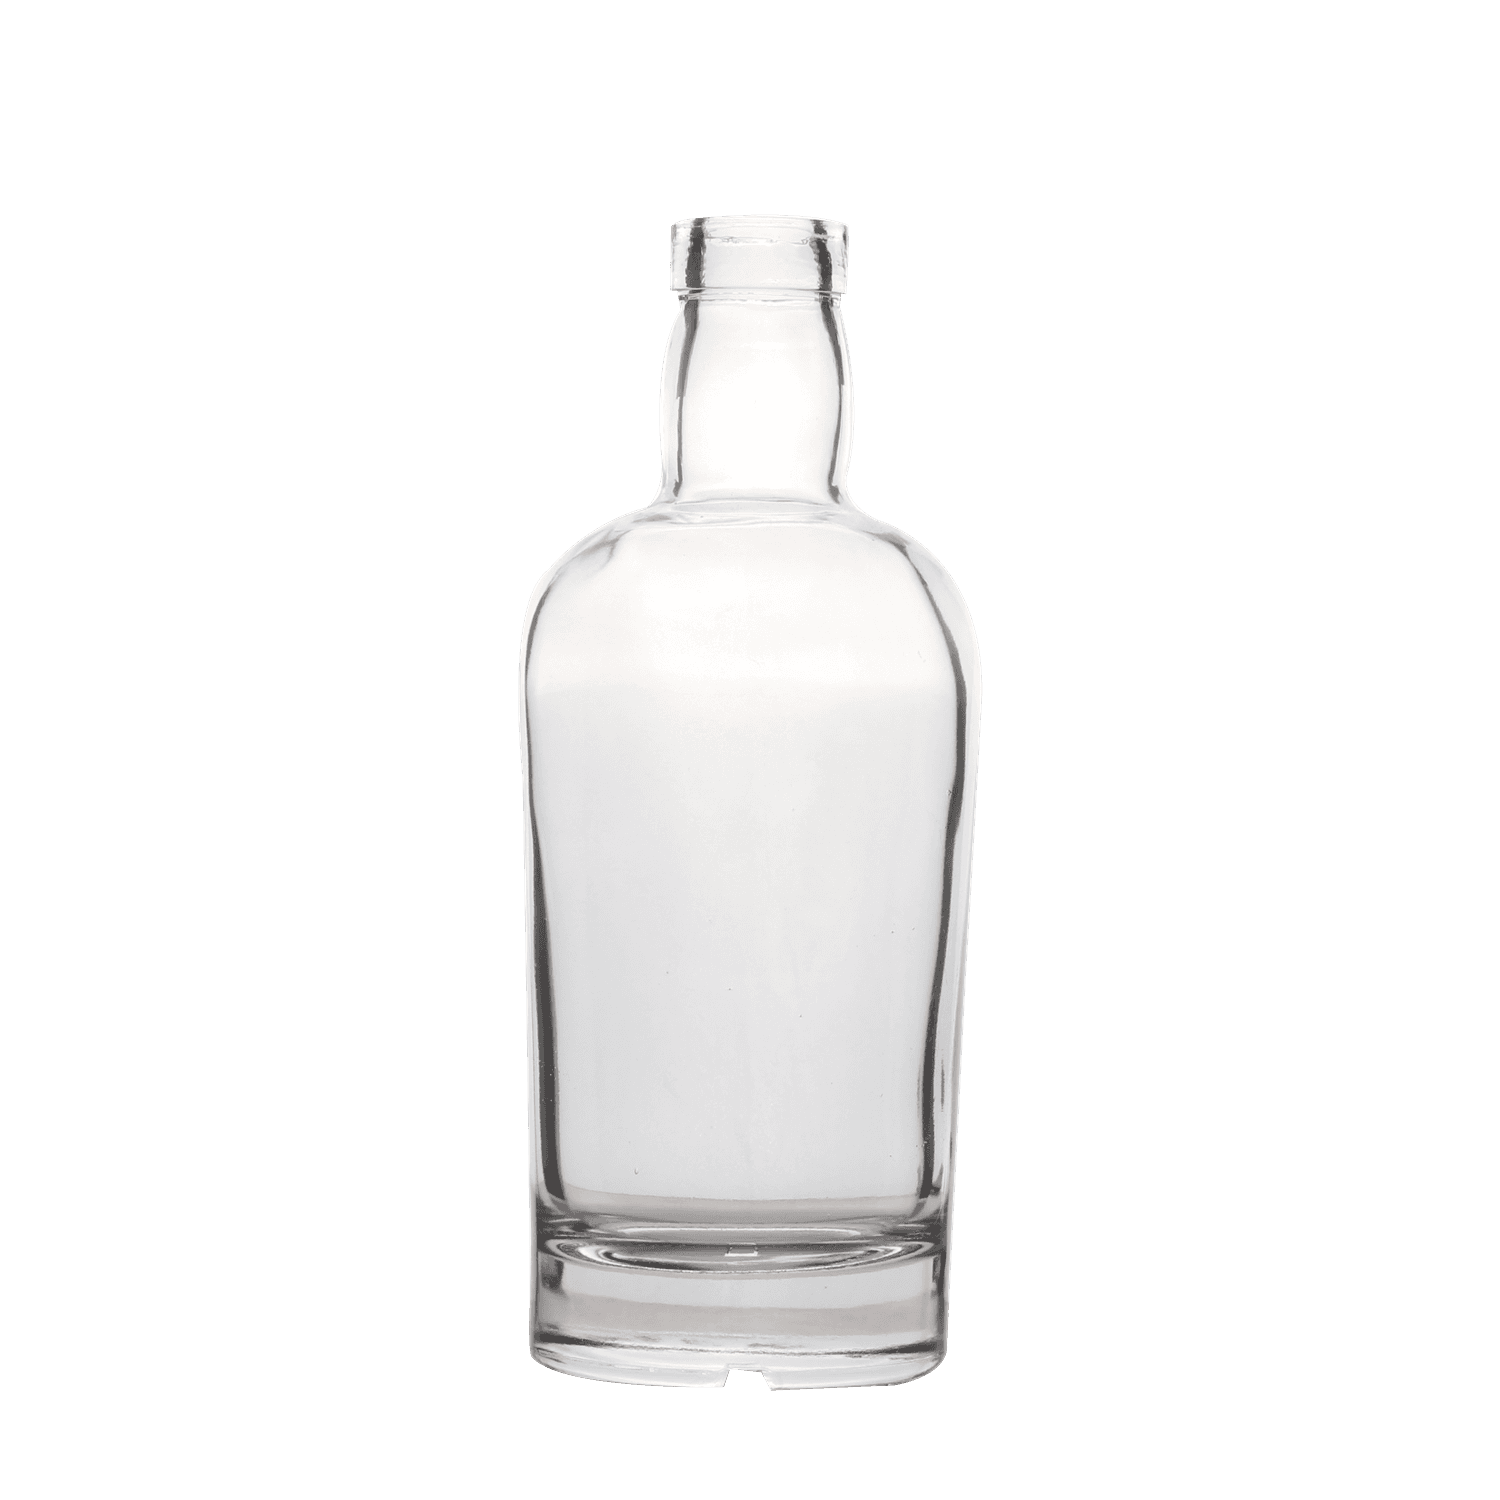 700ml Clear Fancy Brandy Glass Bottle Featured Image